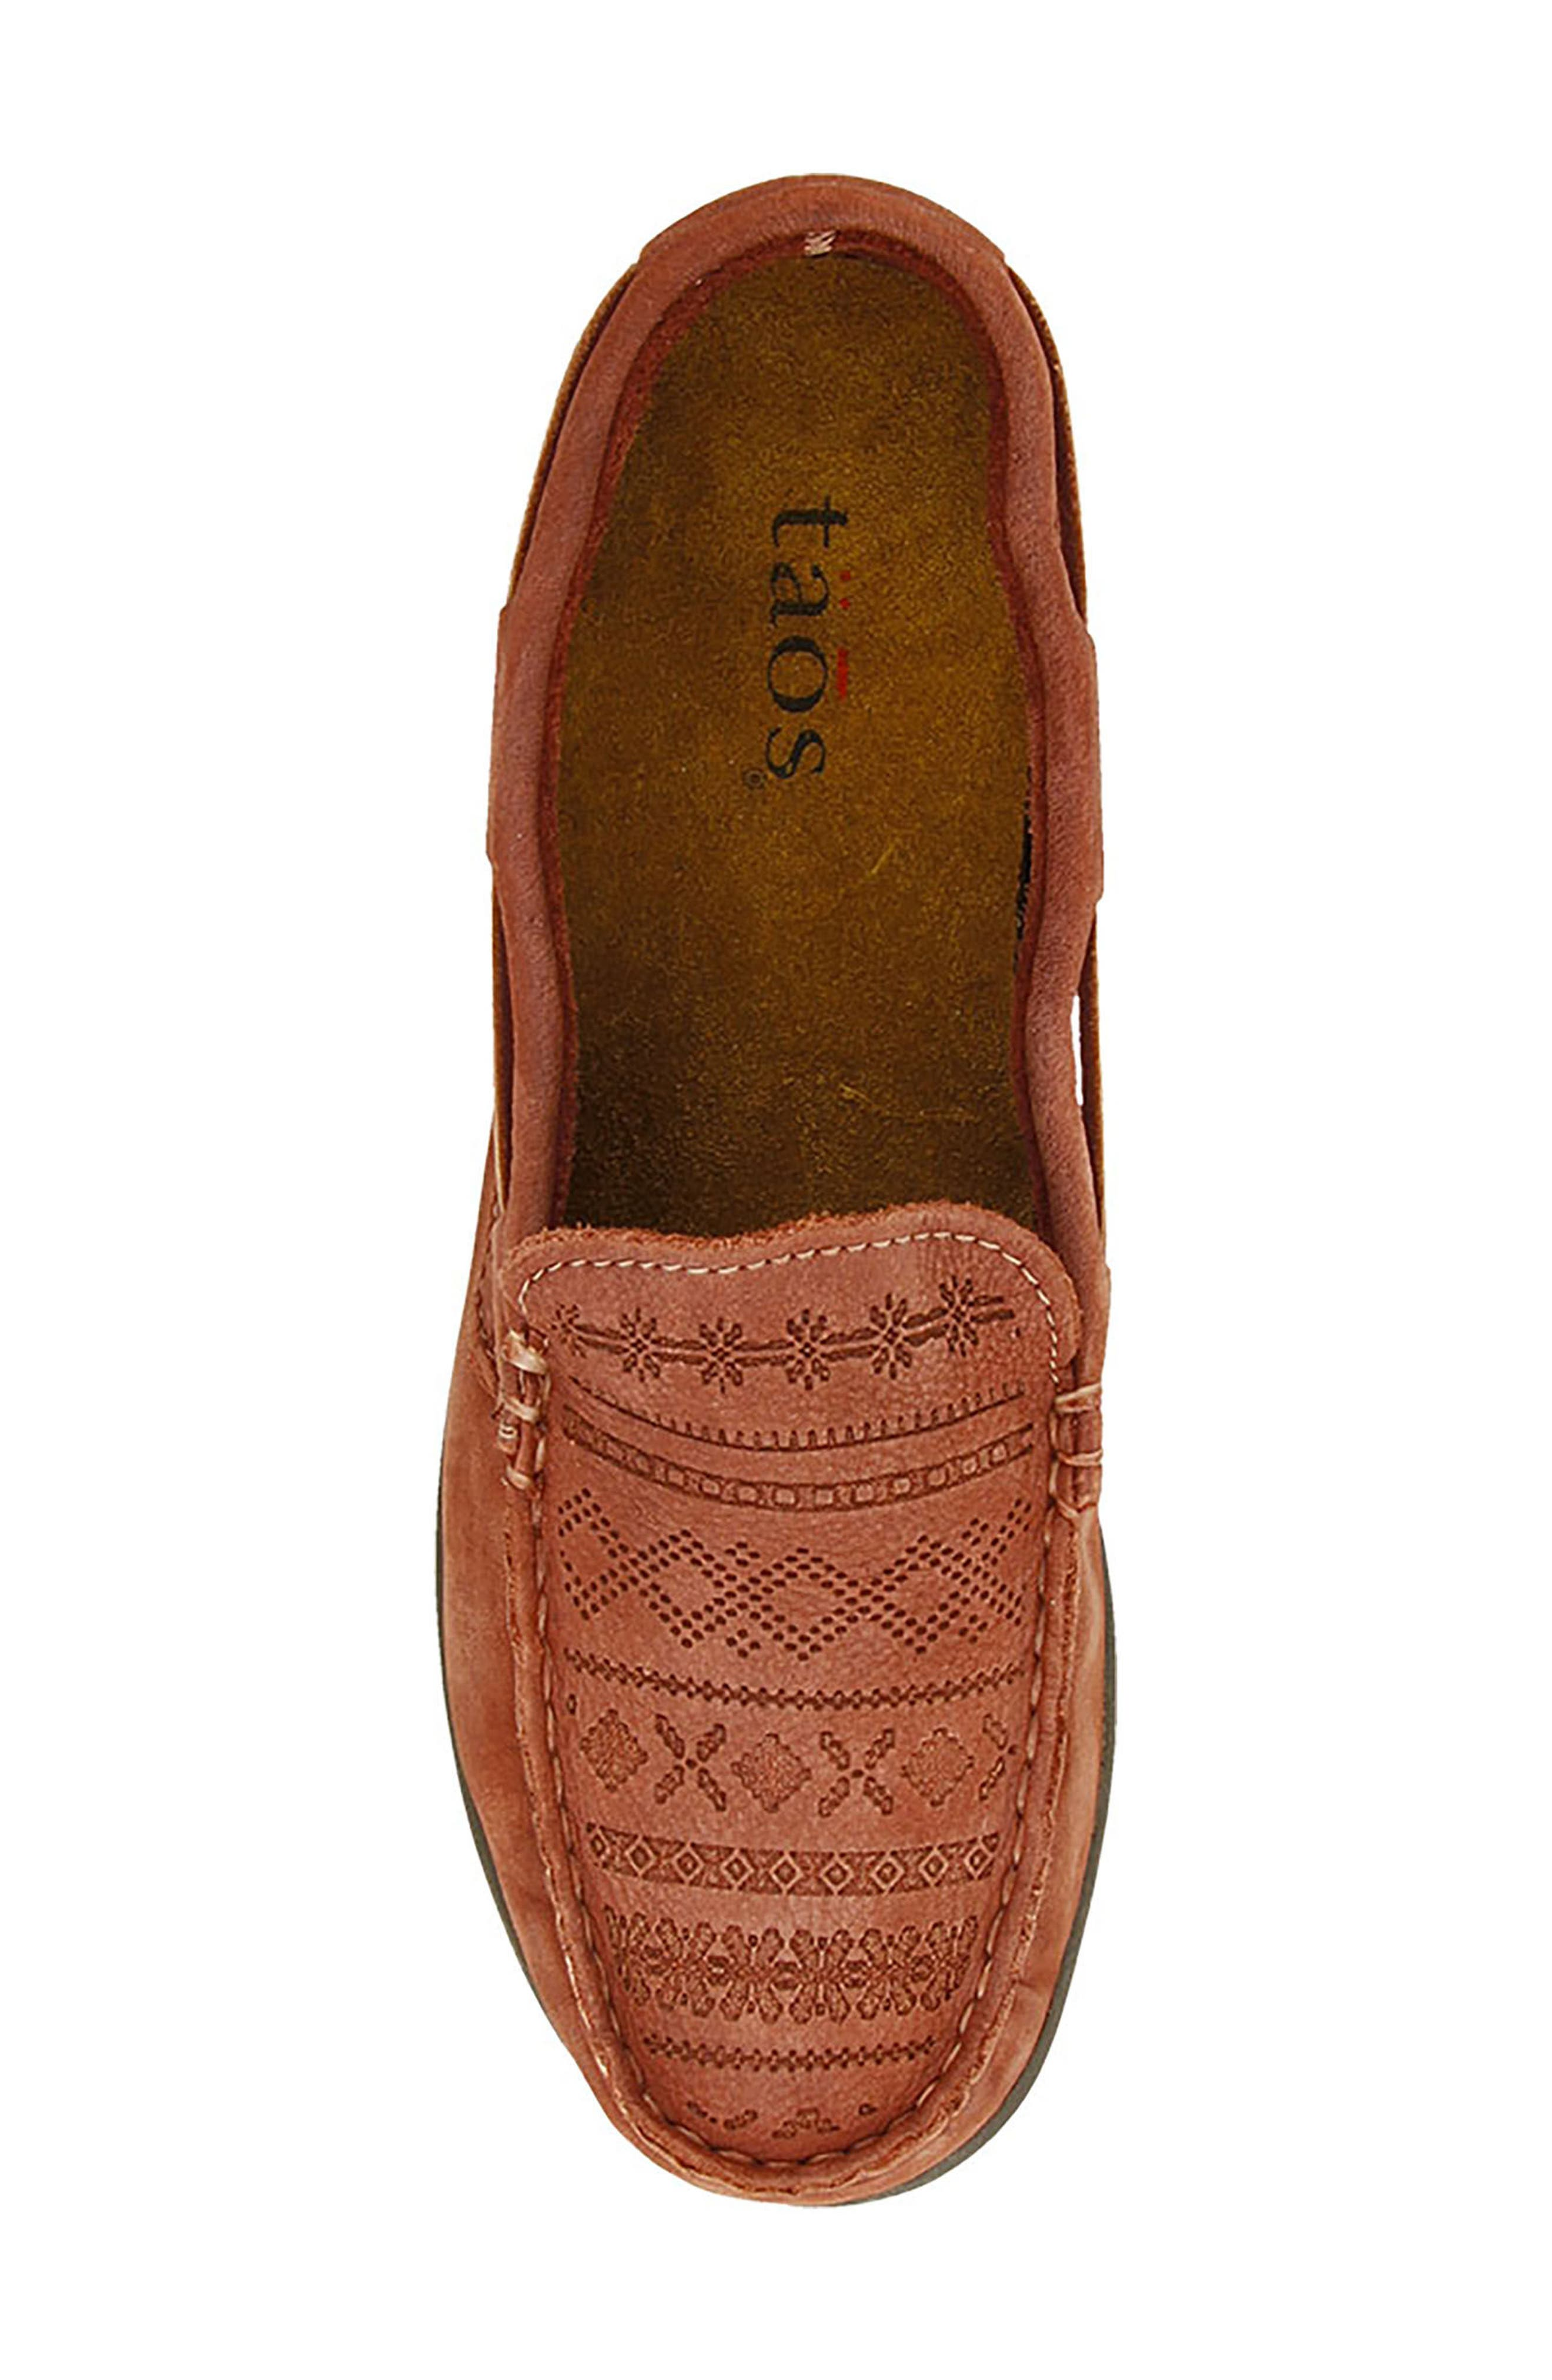 Heritage Moccasin Flat,                             Alternate thumbnail 5, color,                             Spice Red Leather